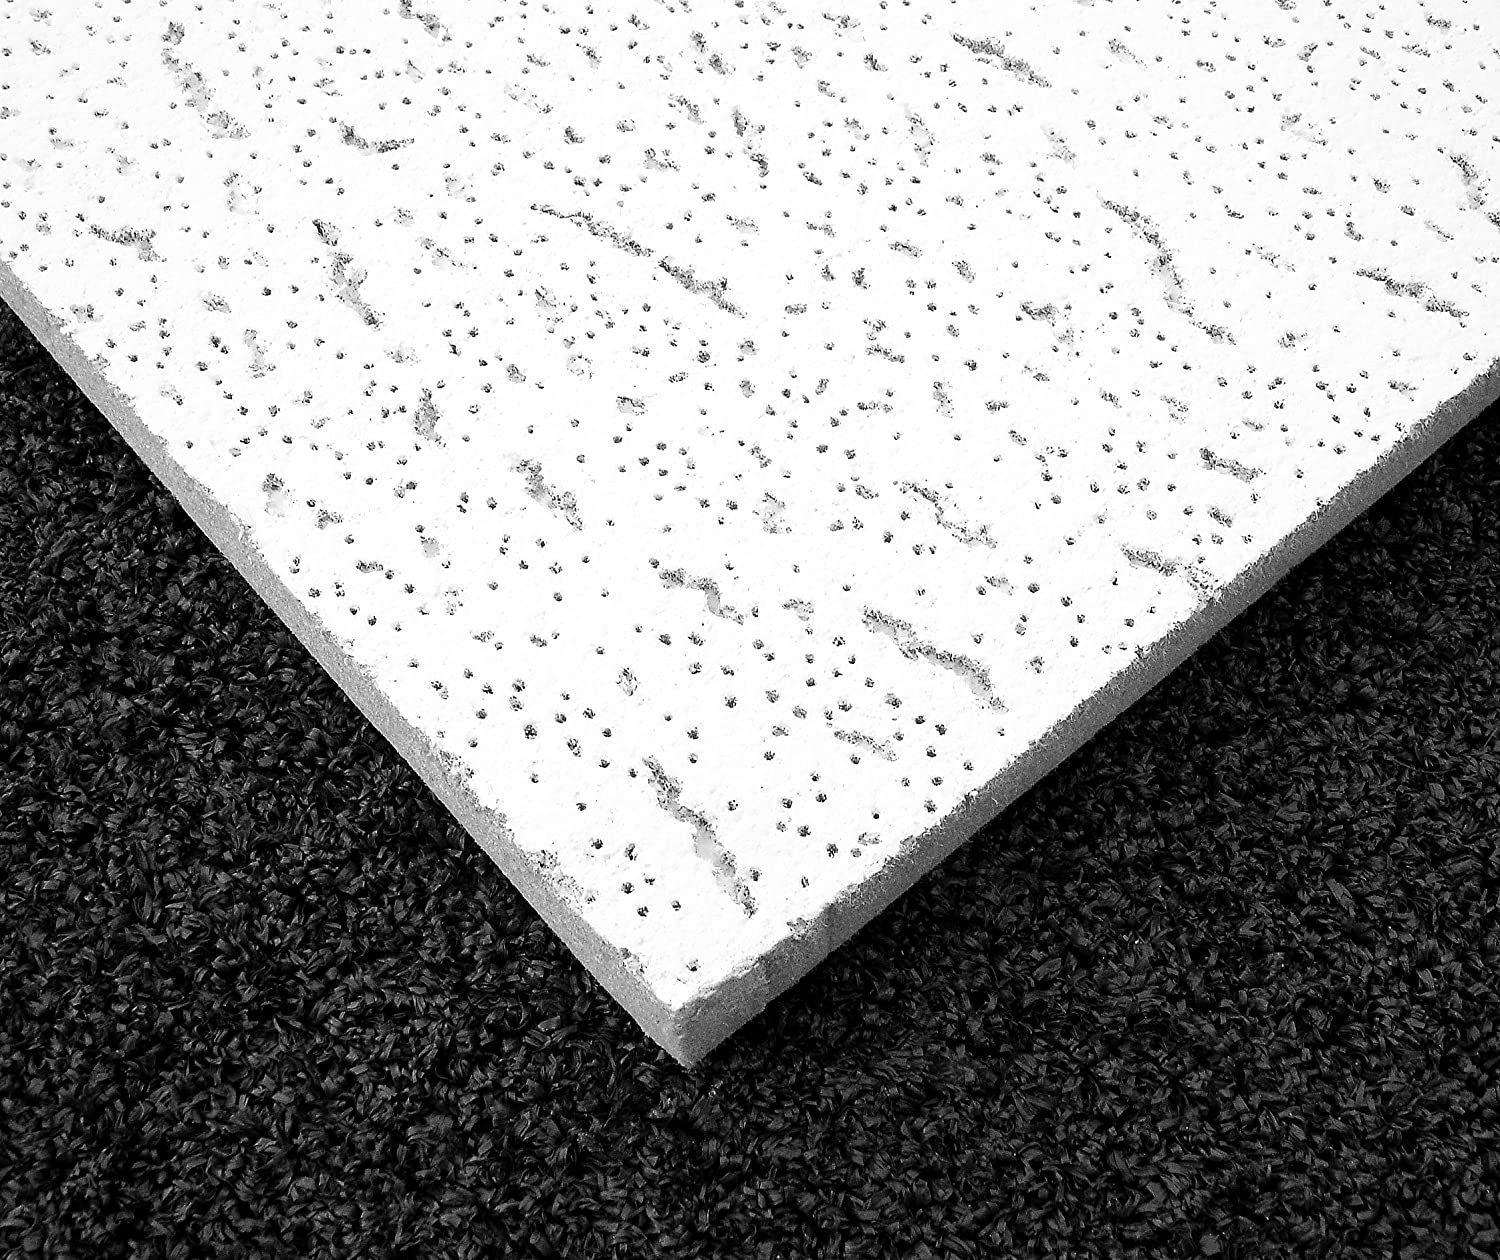 Armstrong tatra flat ceiling tiles board 1200 x 600mm square edge armstrong tatra flat ceiling tiles board 1200 x 600mm square edge 24mm grid uk amazon diy tools dailygadgetfo Gallery